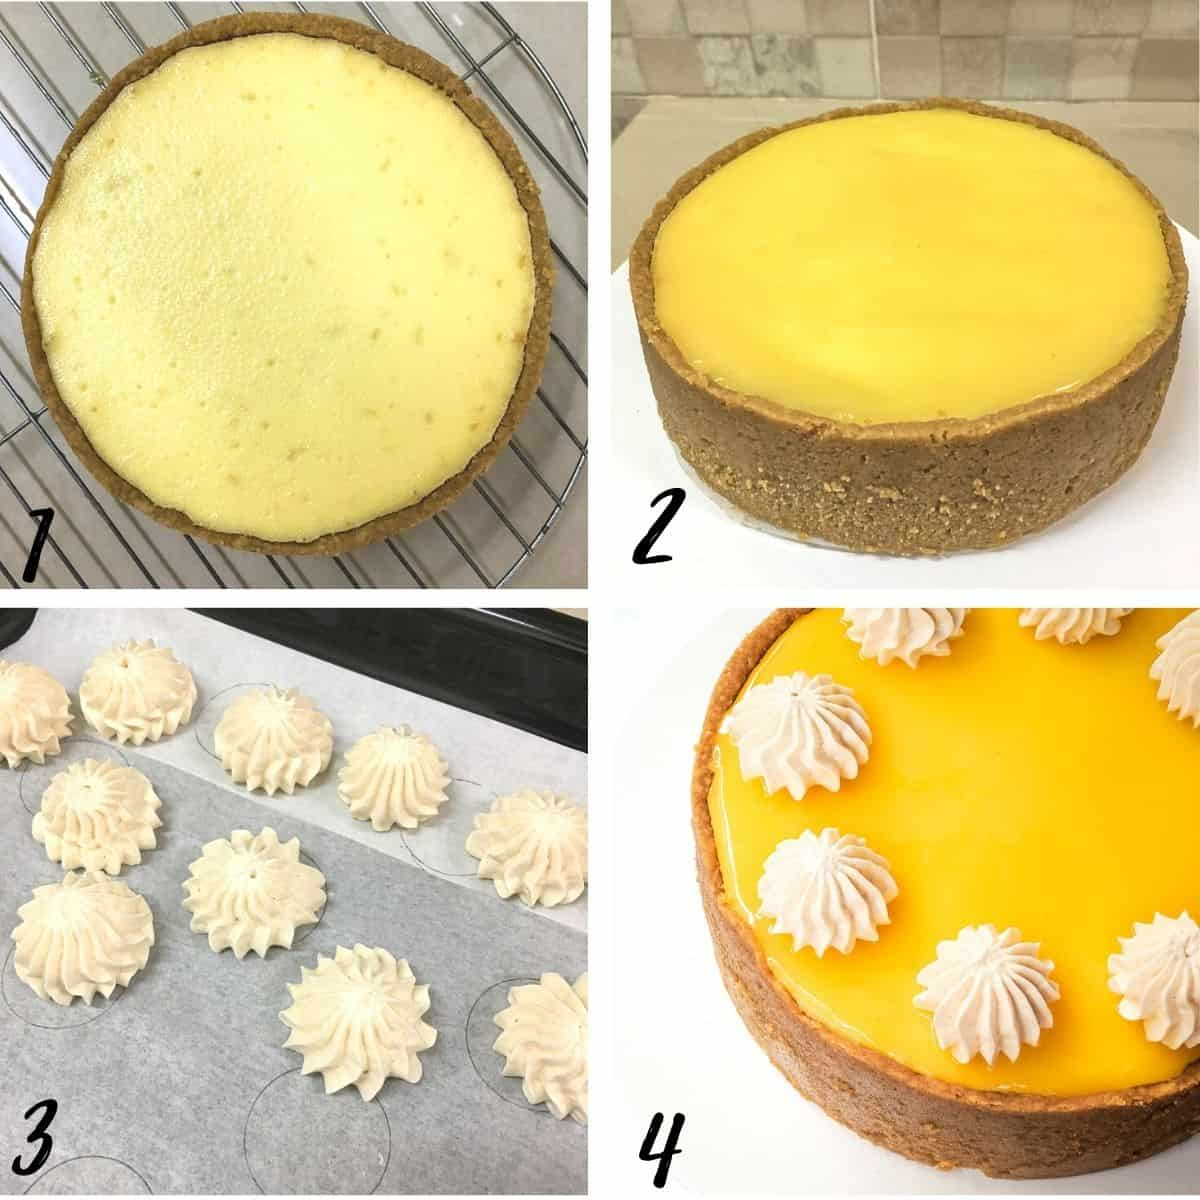 A poster of 4 images showing how to decorate a cheesecake with lemon curd and meringue cookies